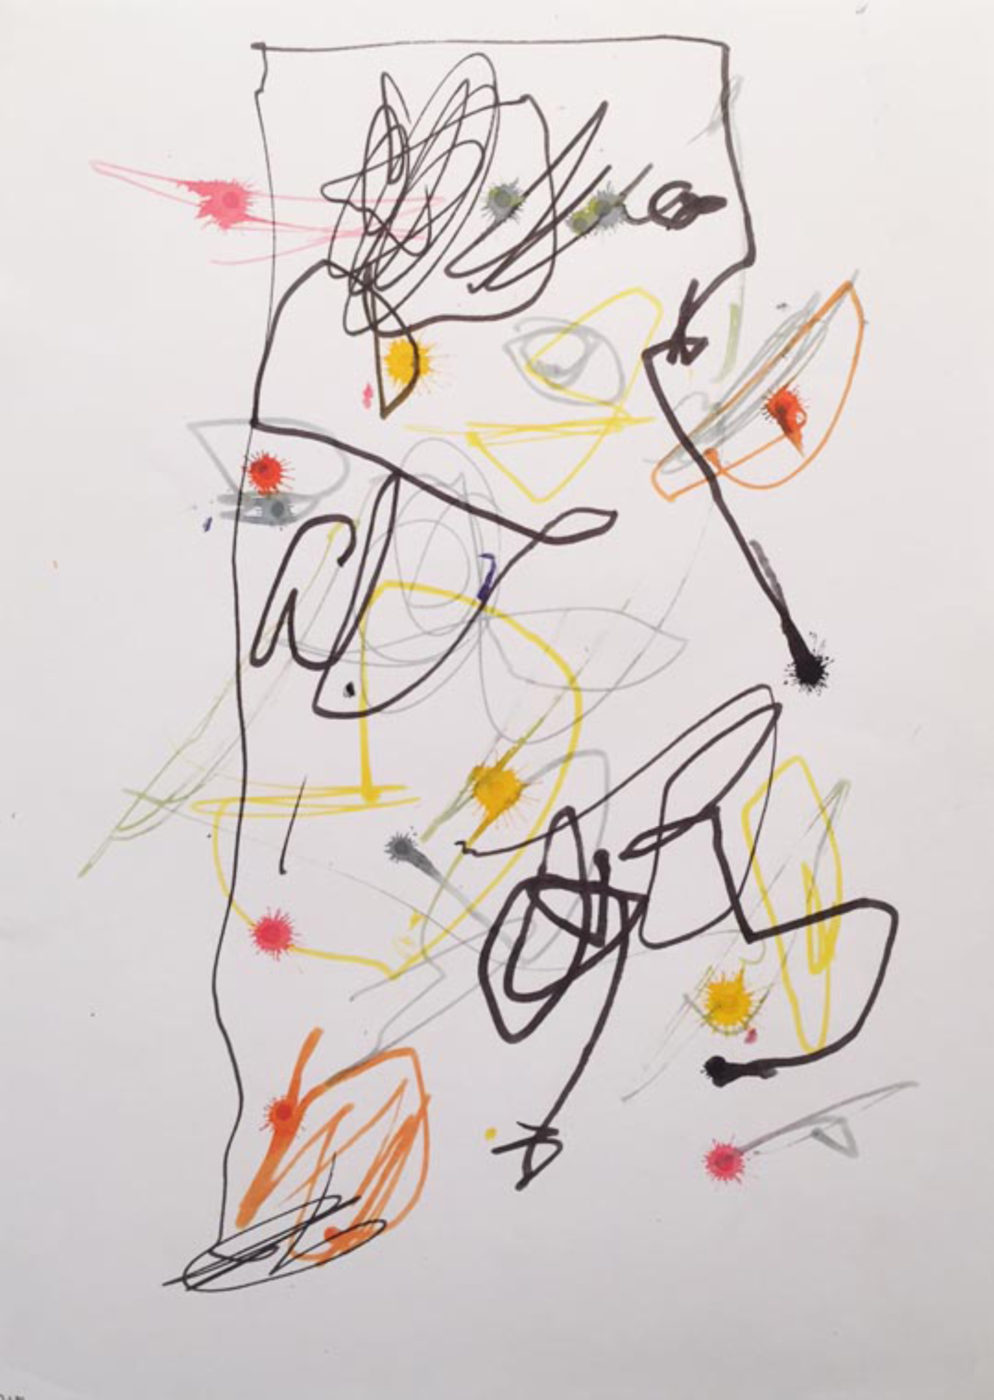 MARC FELD 2003 LITTLE SONG FOR MAURICIO KAGEL 9 Stylo feutre sur papier 21x29, 7 cm